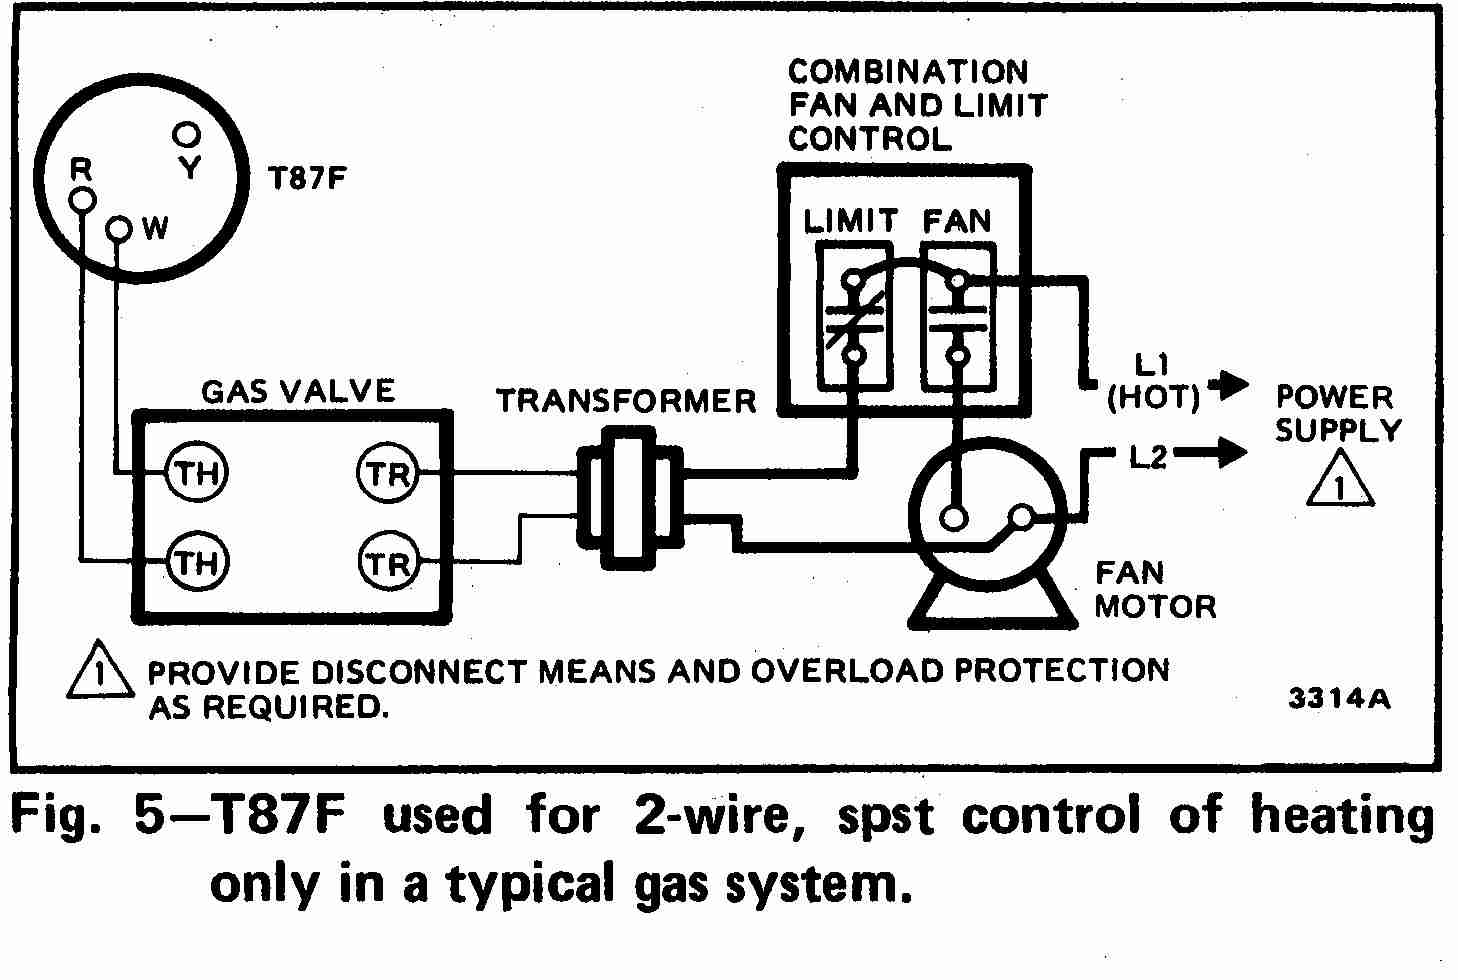 System Sensor D2 Wiring Diagram in addition Fire Alarm Control Panel Wikipedia Readingrat   Entrancing For Apollo Smoke Detector Wiring Diagram as well V2500 Lbm Issue 01 moreover T er And Flow Switch Wiring Diagrams together with Us7762786. on duct detector